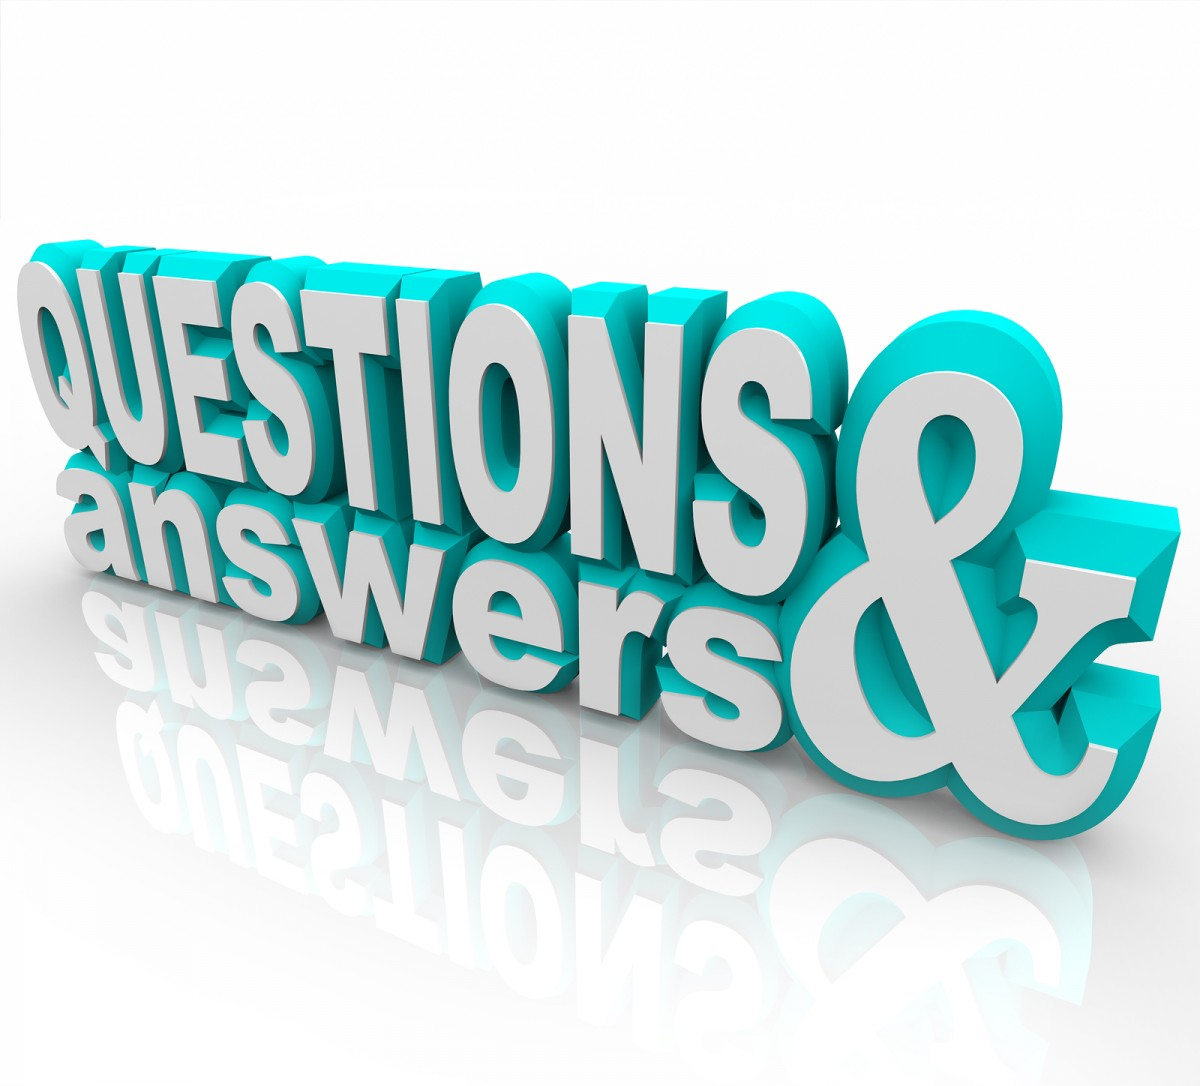 Blog Question: Contribution between insurers